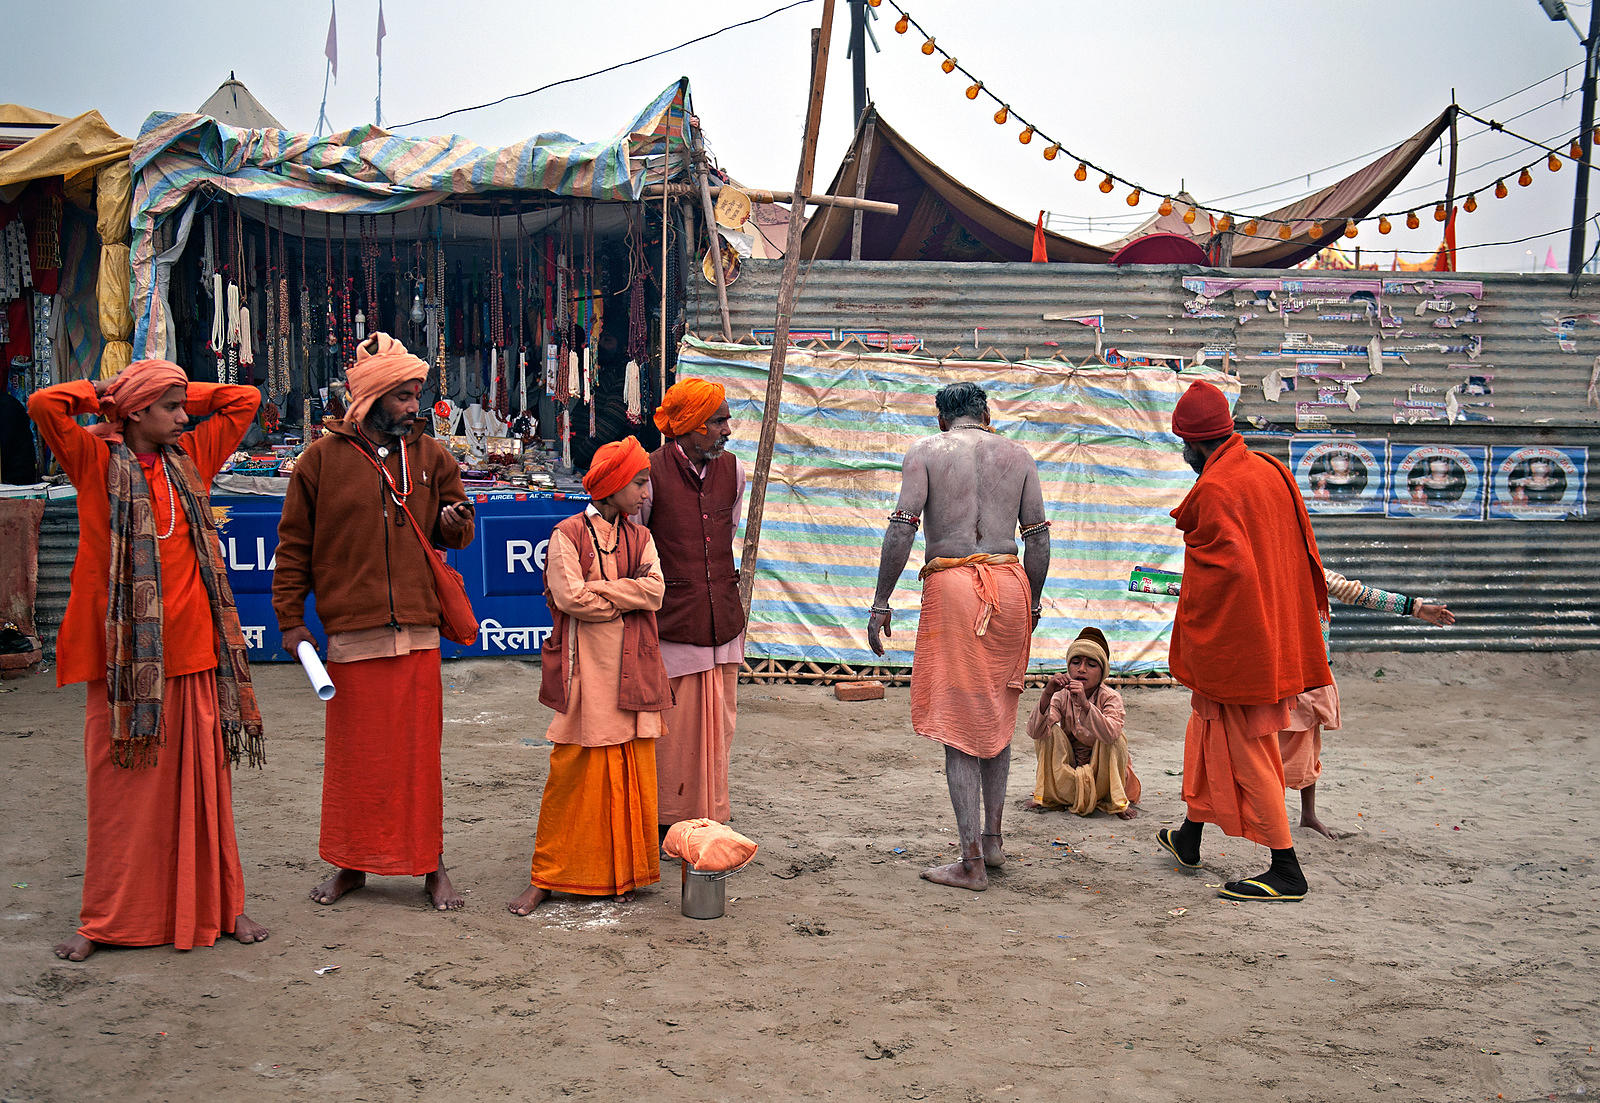 An old saint chats with a boy while others wait for them to finish their conversation. This photograph was shot during the Kumbh Mela.